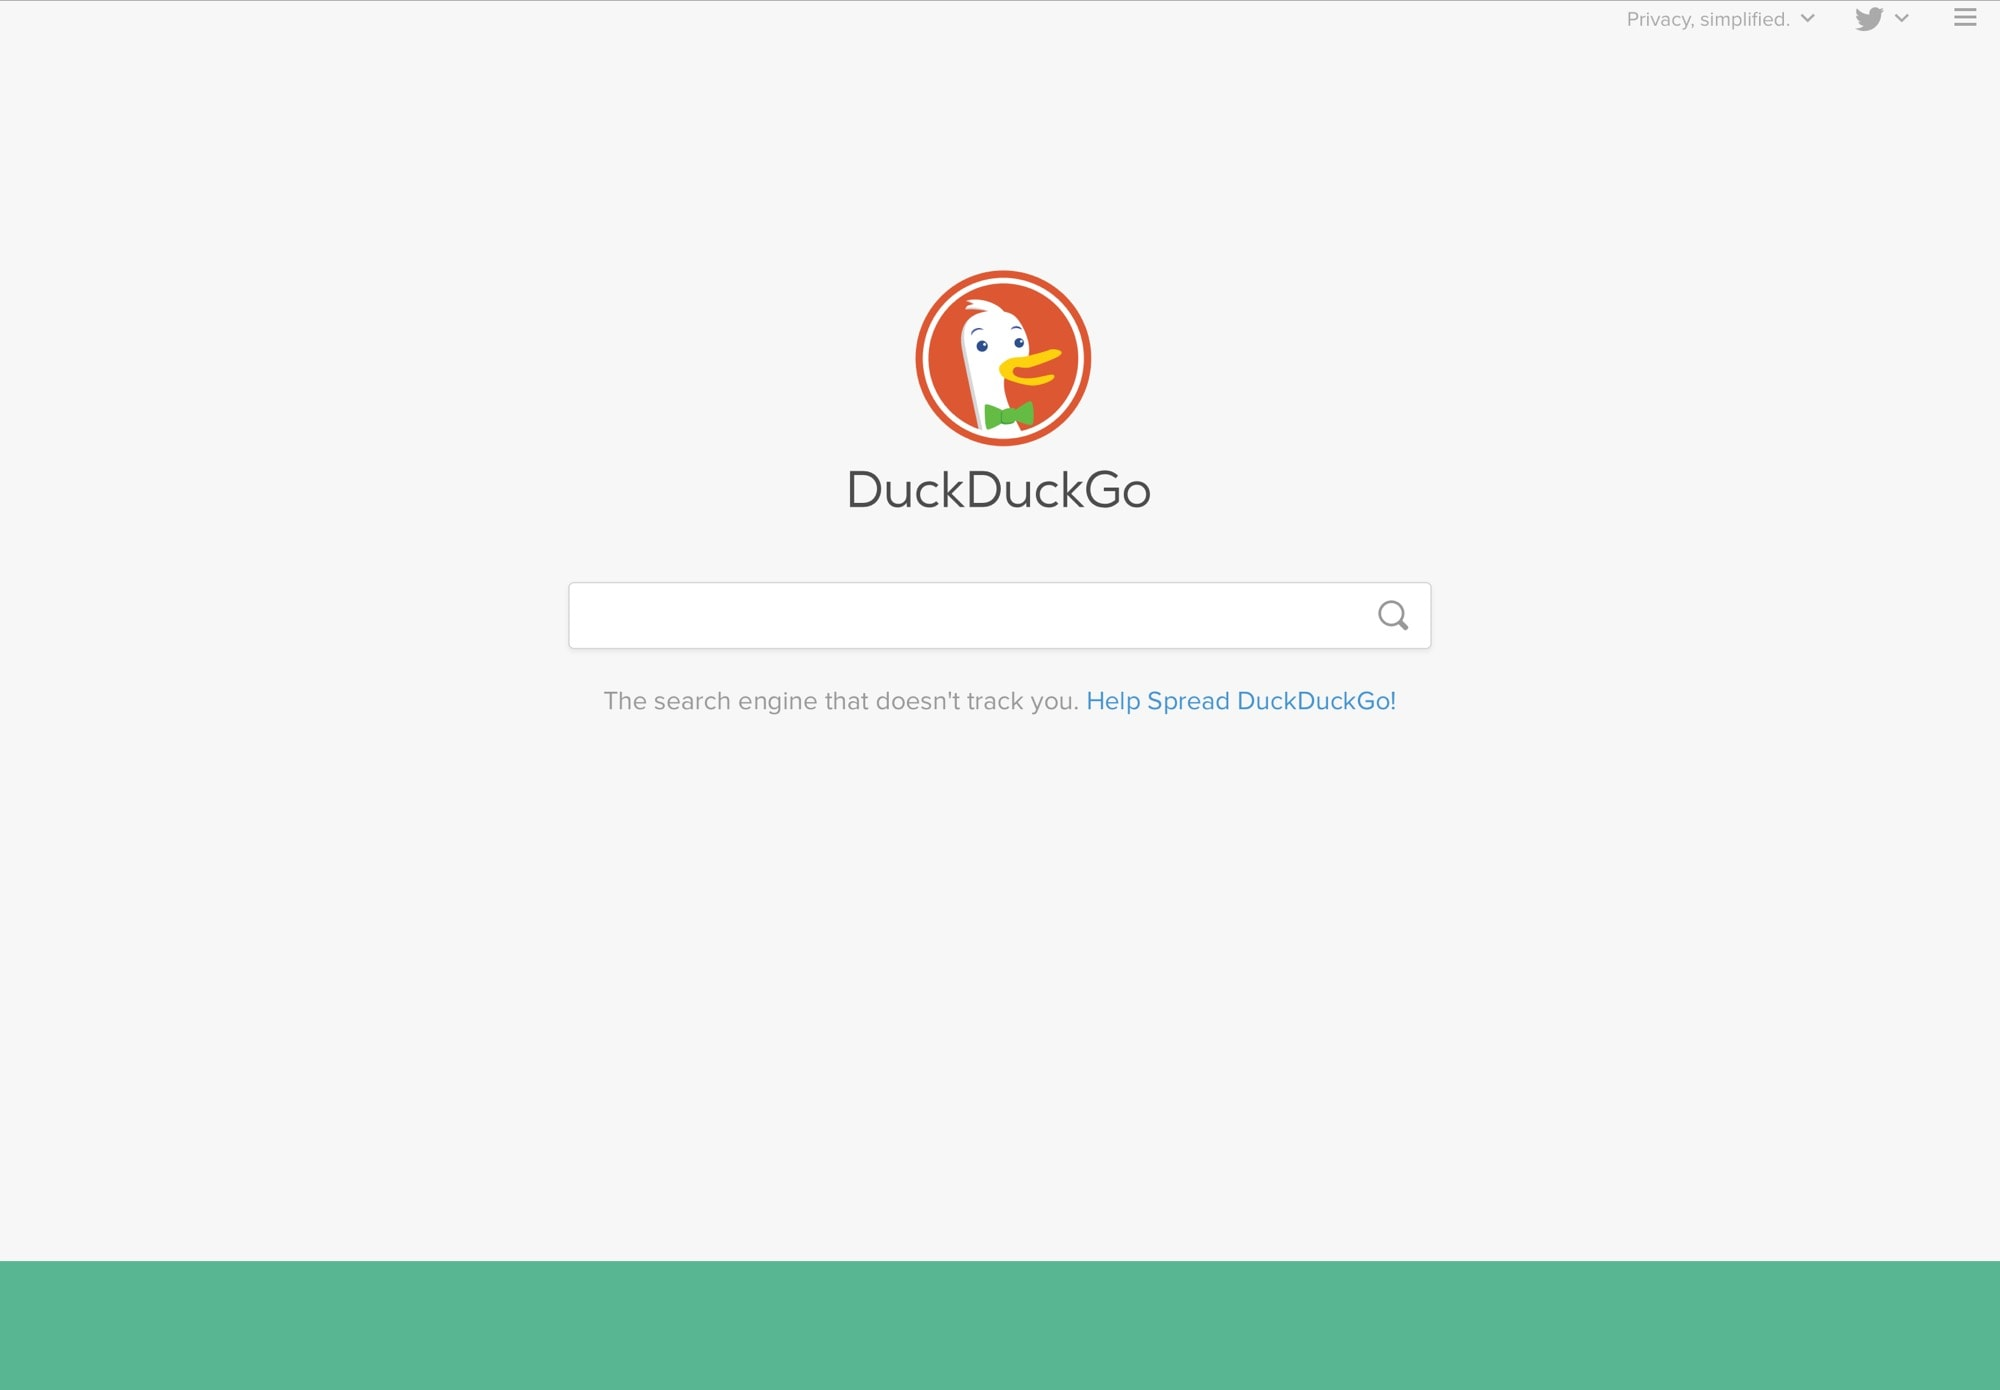 DuckDuckGo doesn't track you the way Google does.